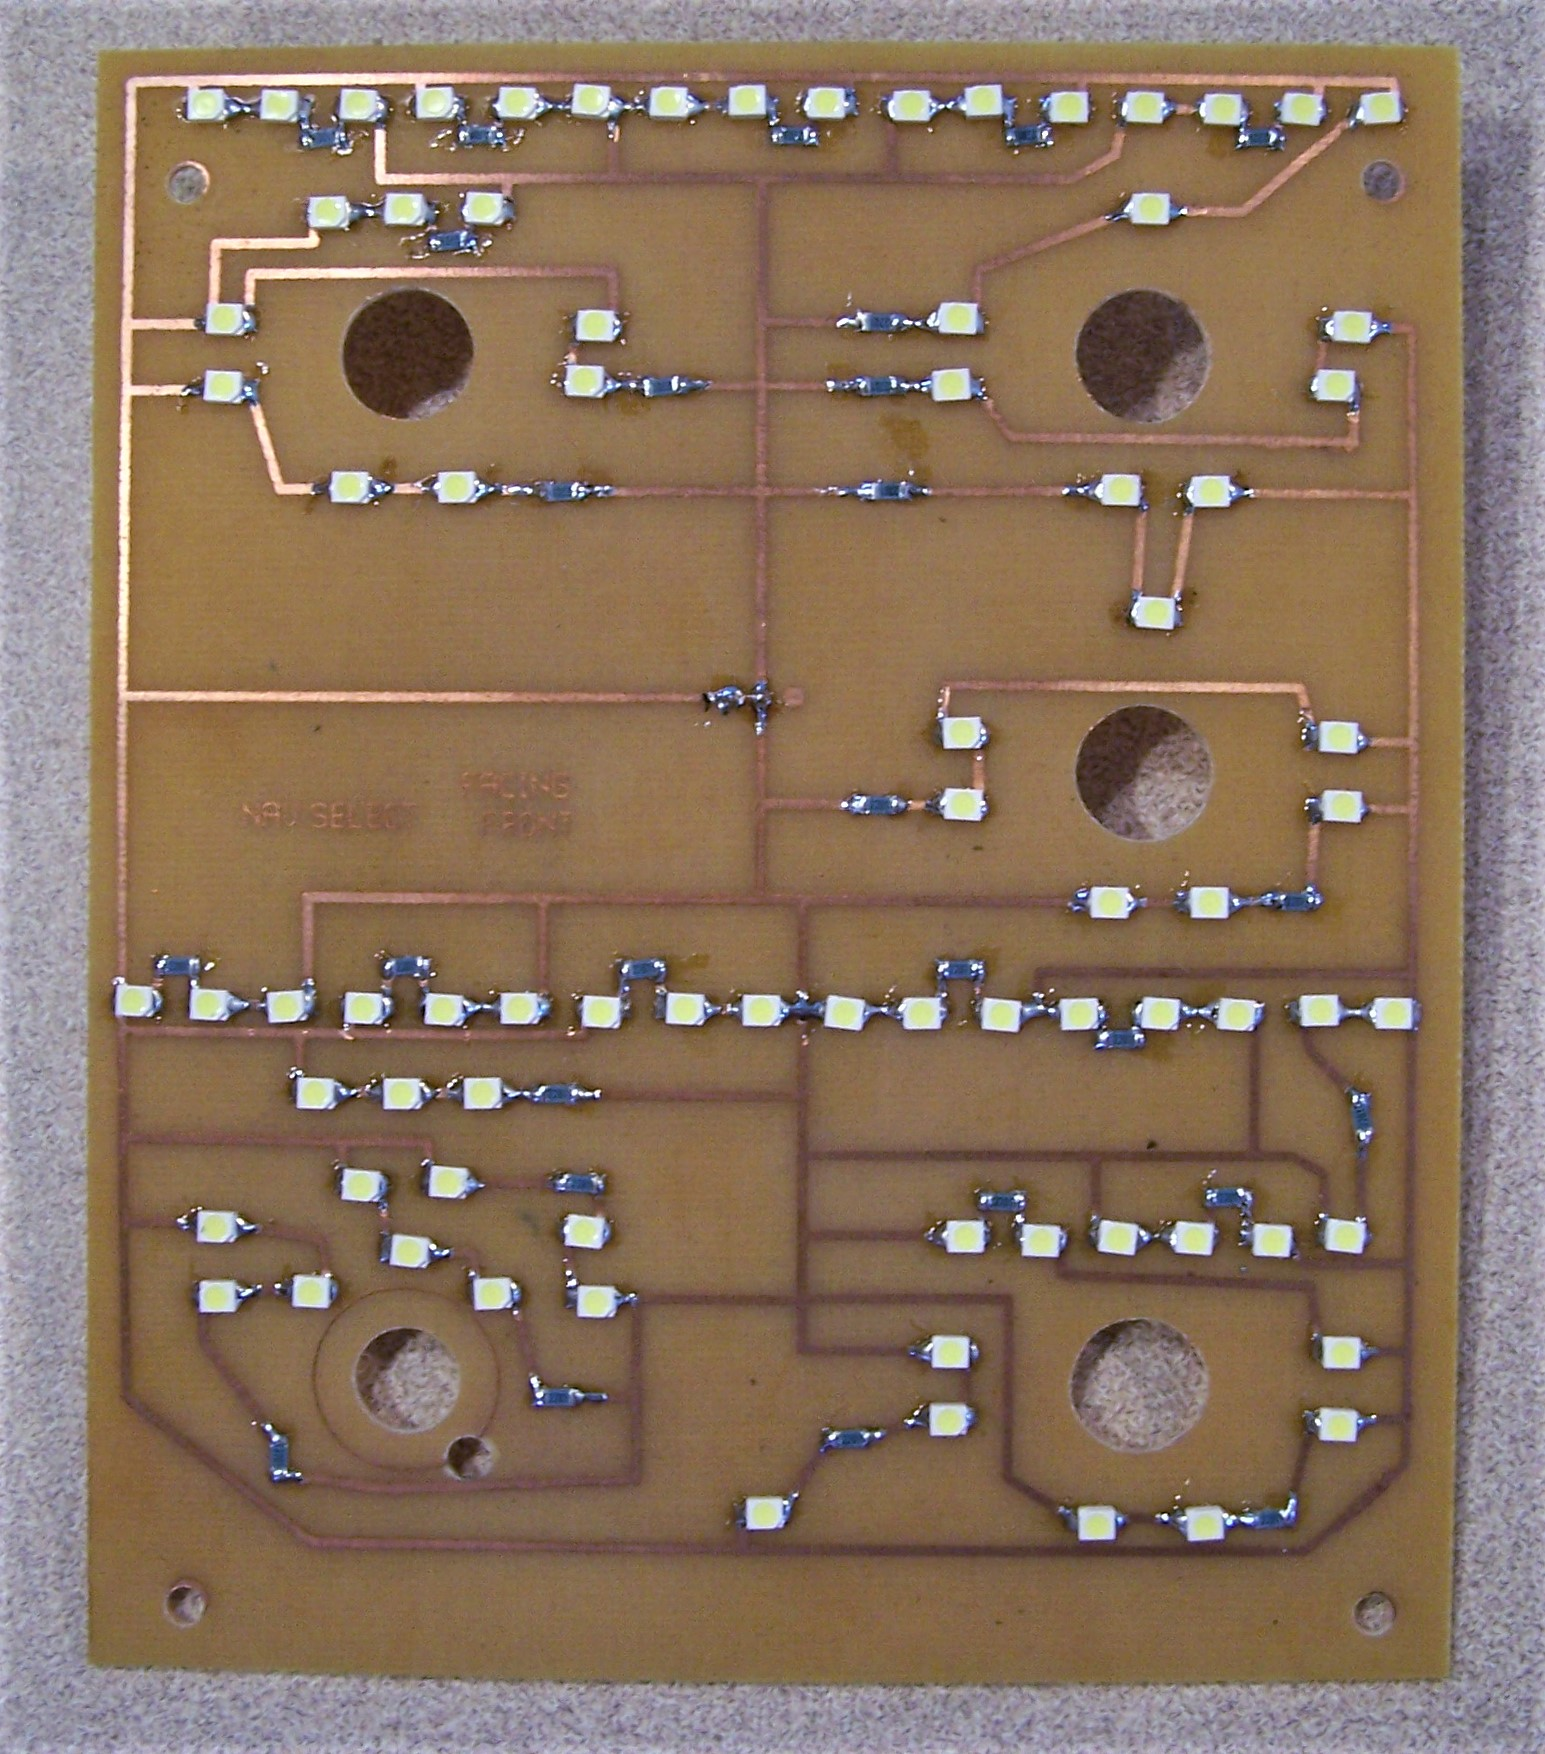 Boeing 737 Panel Dimensions Instrument Cluster Circuit Board It Is Bolted To The With Leds Resistors And Connectors Mounted Parts Are Not Perfectly Lined Up But Its What You Get When Hand Soldering Smd